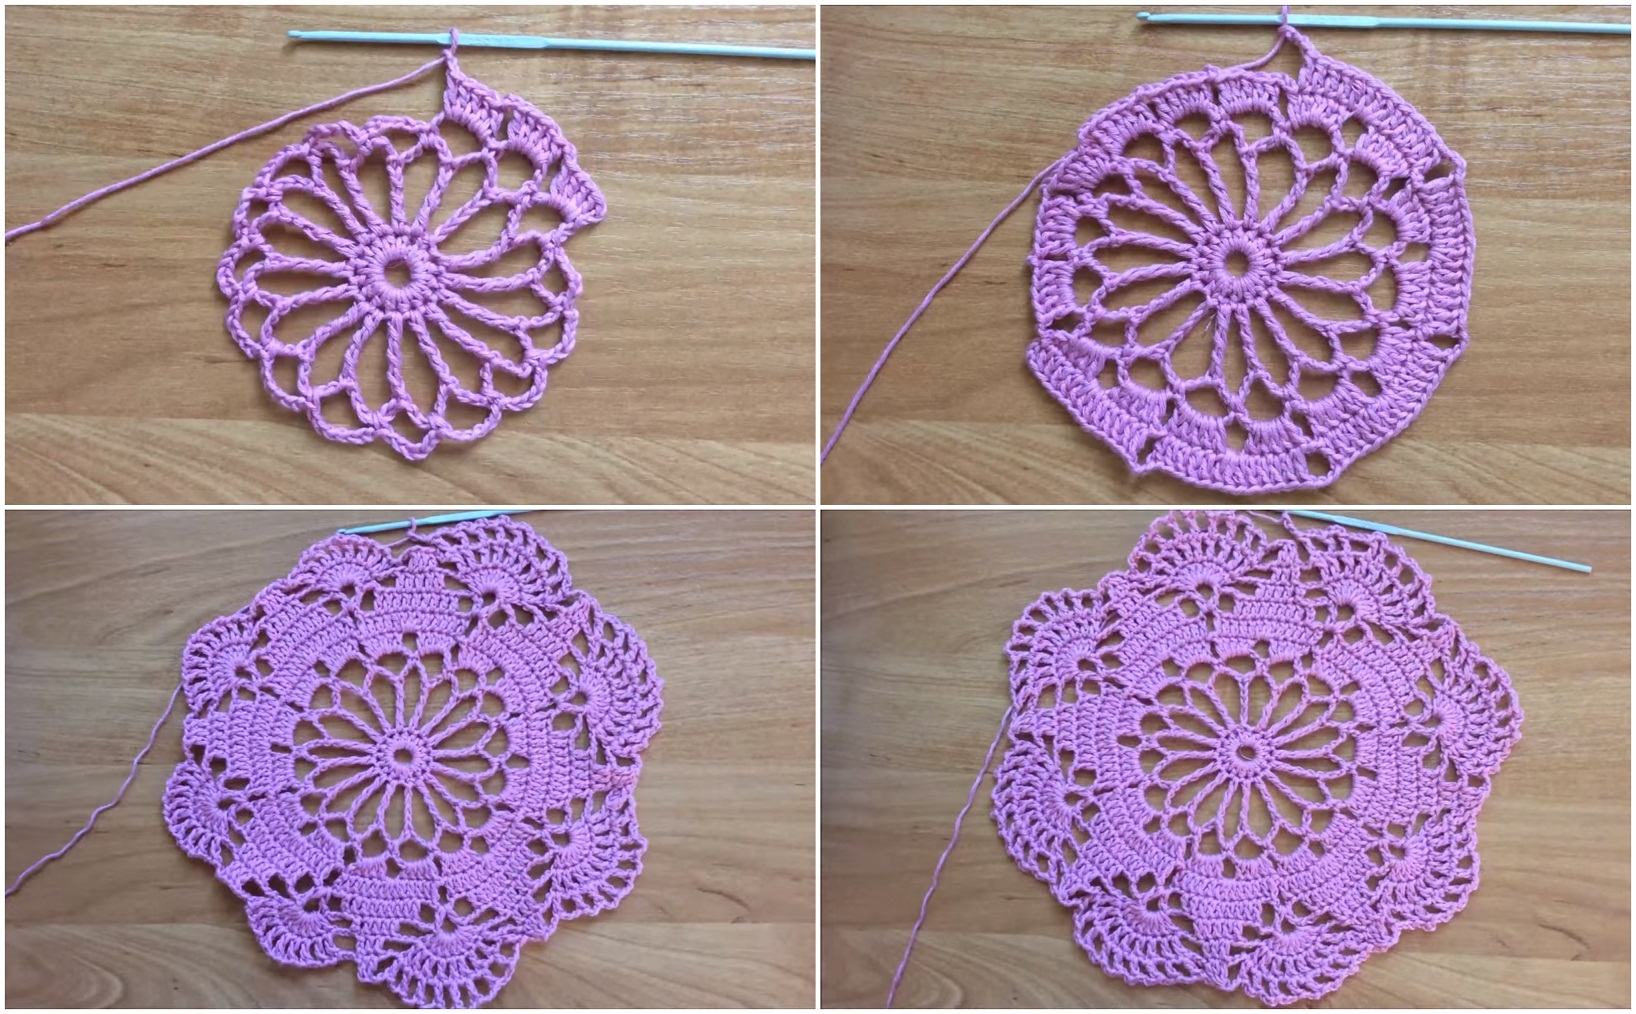 Free Crochet Patterns For Beginners Awesome Inspiration Design